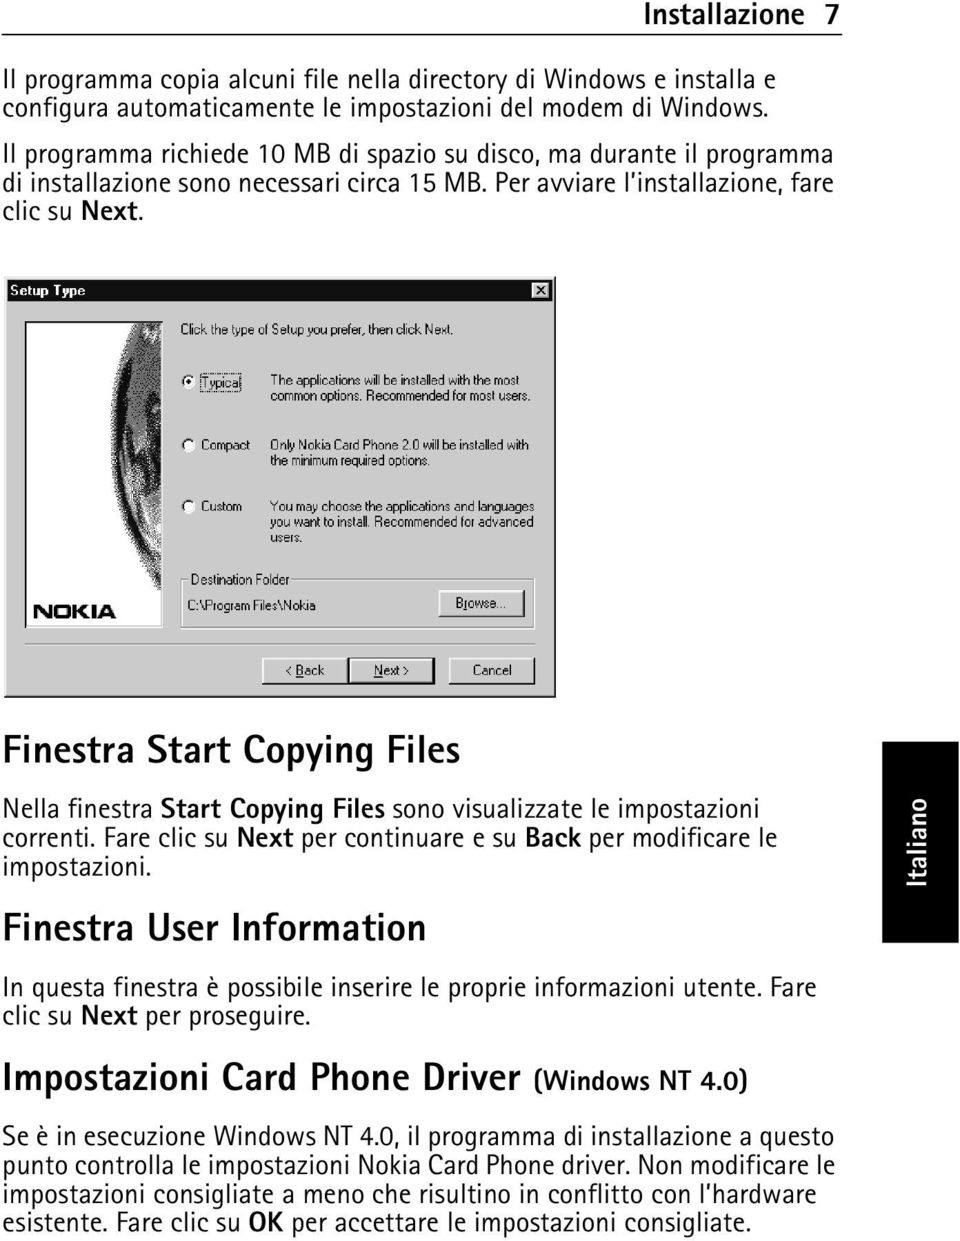 Finestra Start Copying Files Nella finestra Start Copying Files sono visualizzate le impostazioni correnti. Fare clic su Next per continuare e su Back per modificare le impostazioni.